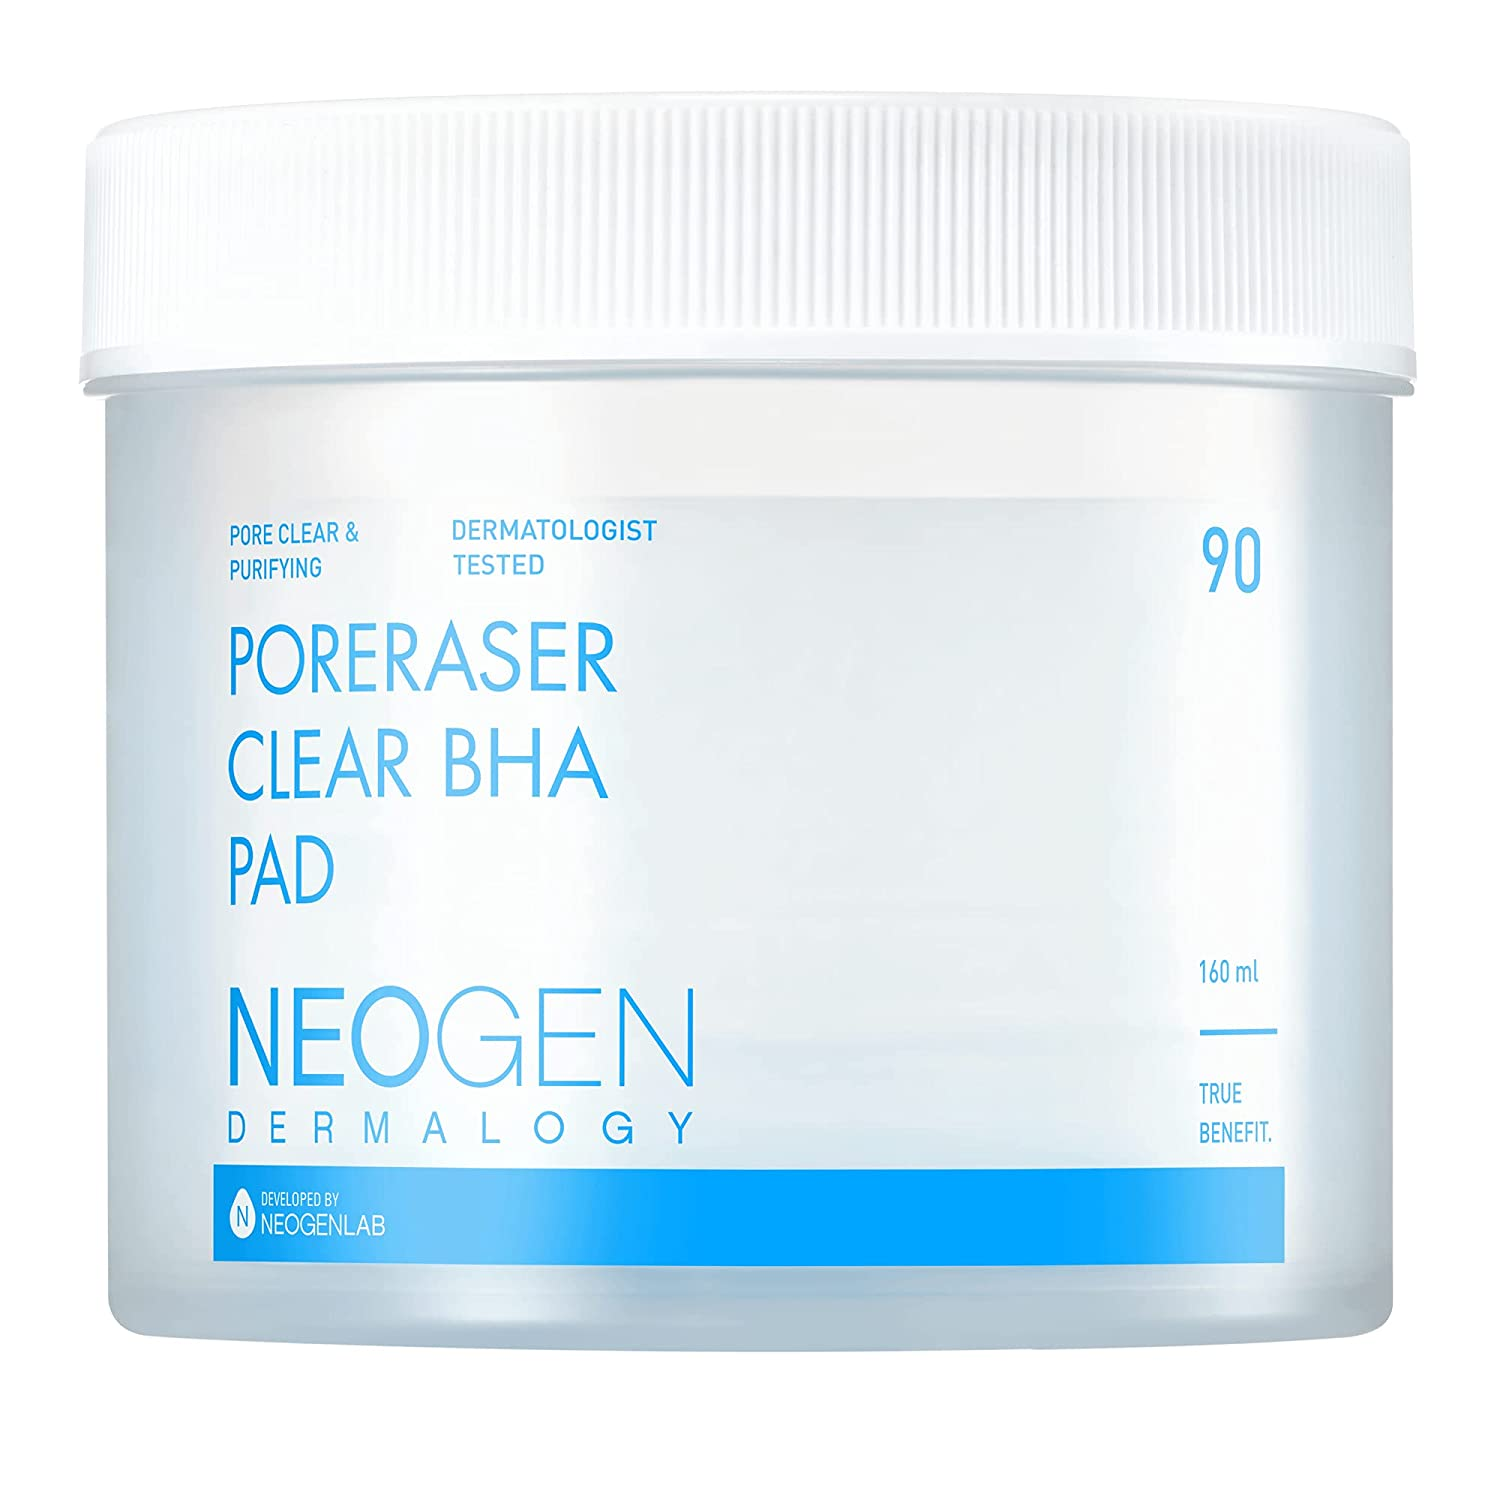 DERMALOGY by NEOGENLAB PORERASER CLEAR BHA 90 Now free shipping Outstanding PAD PADS 160ml